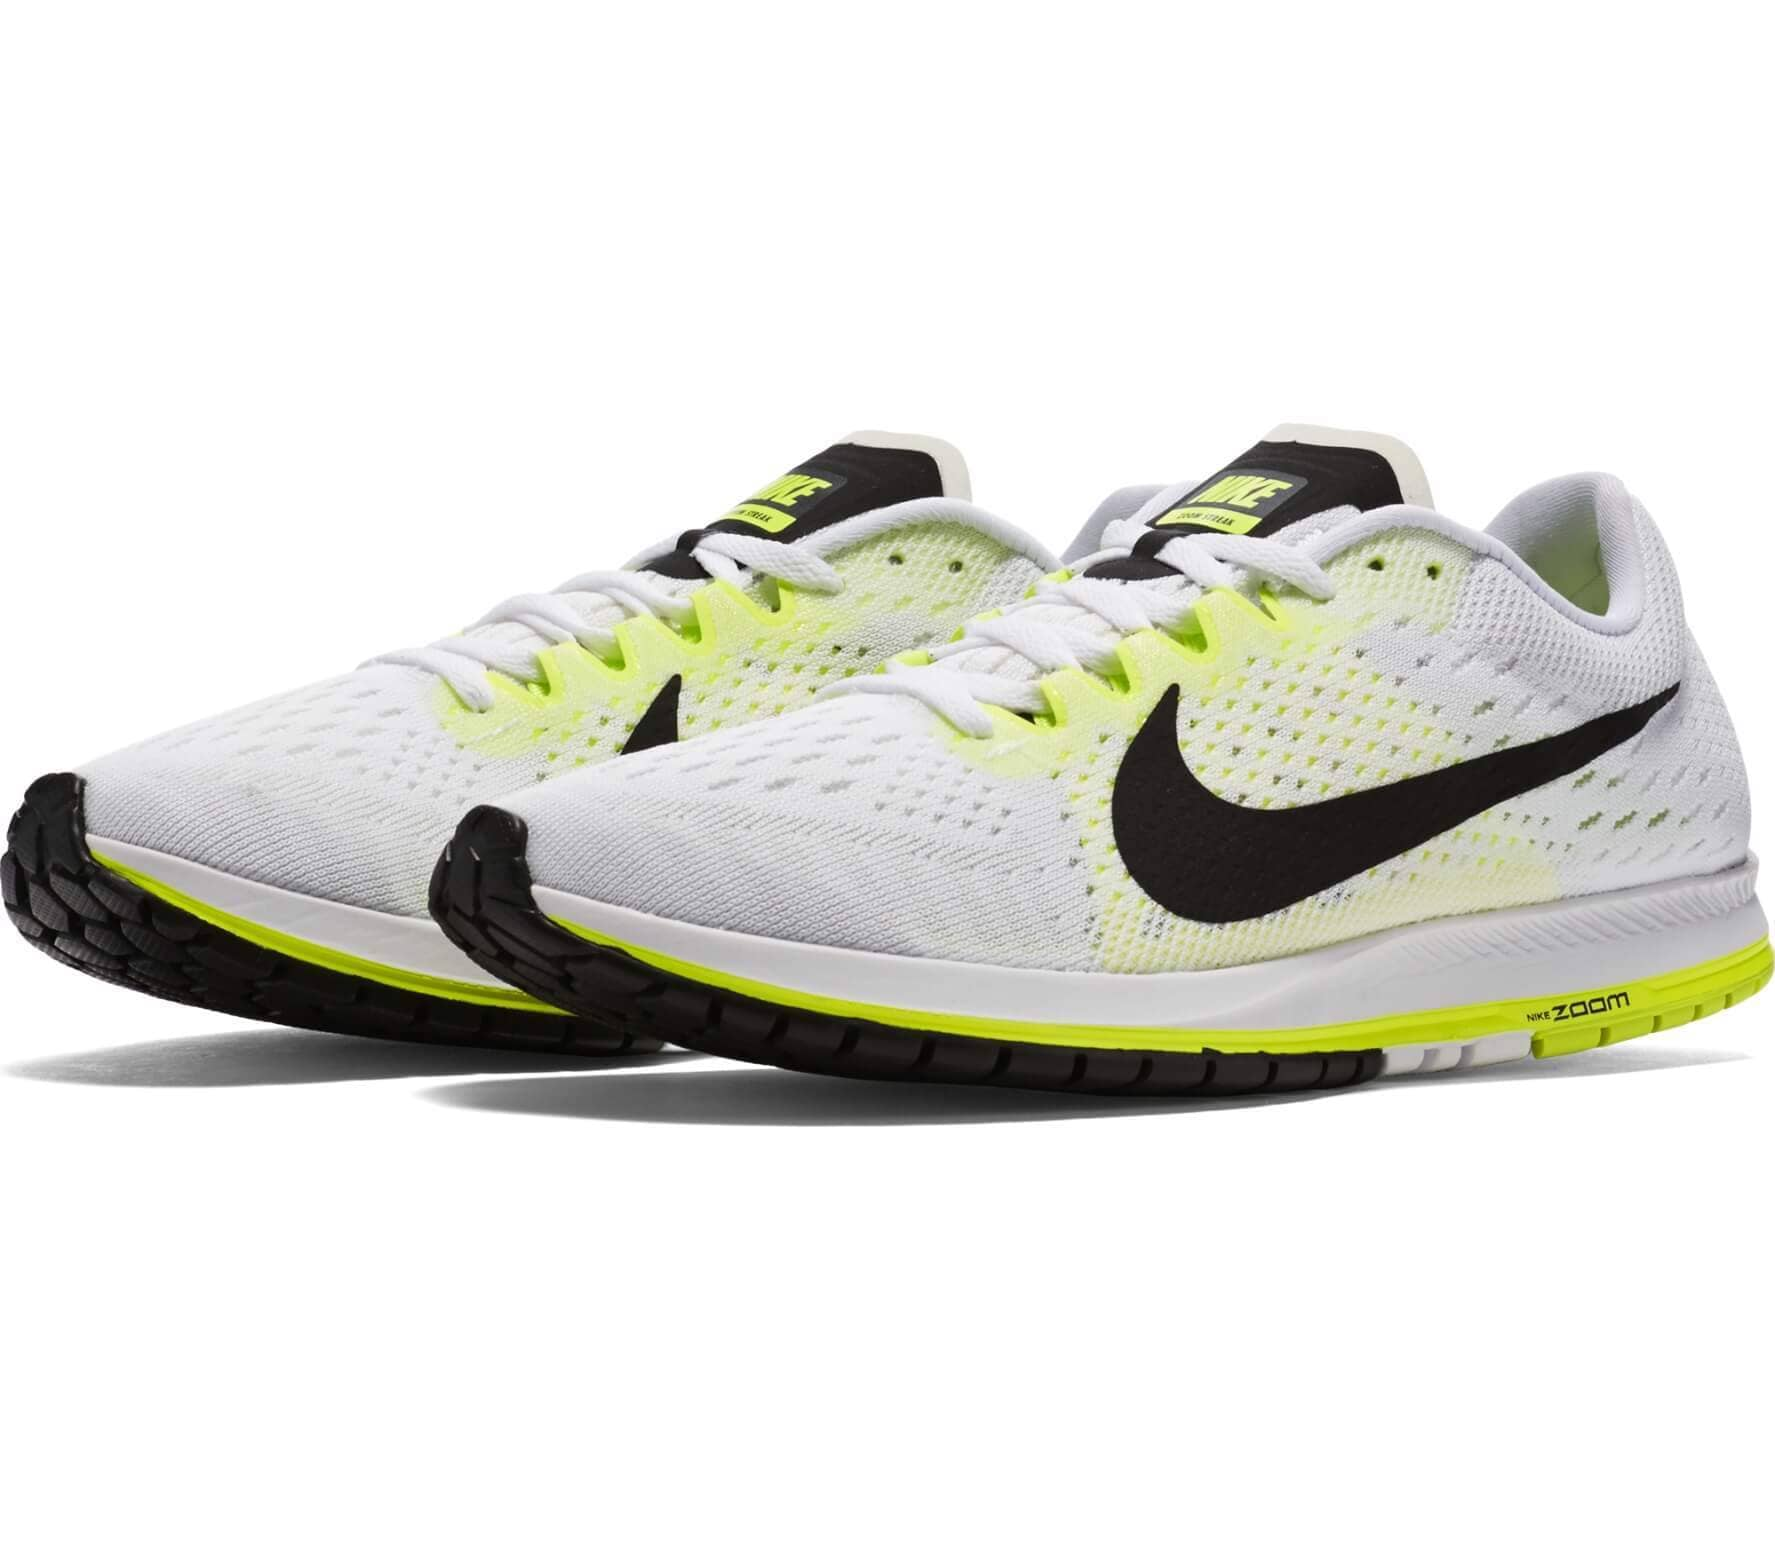 the best attitude eac6a e4b4a Nike Air Zoom Streak 6 Unisex Running Shoes White Yellow